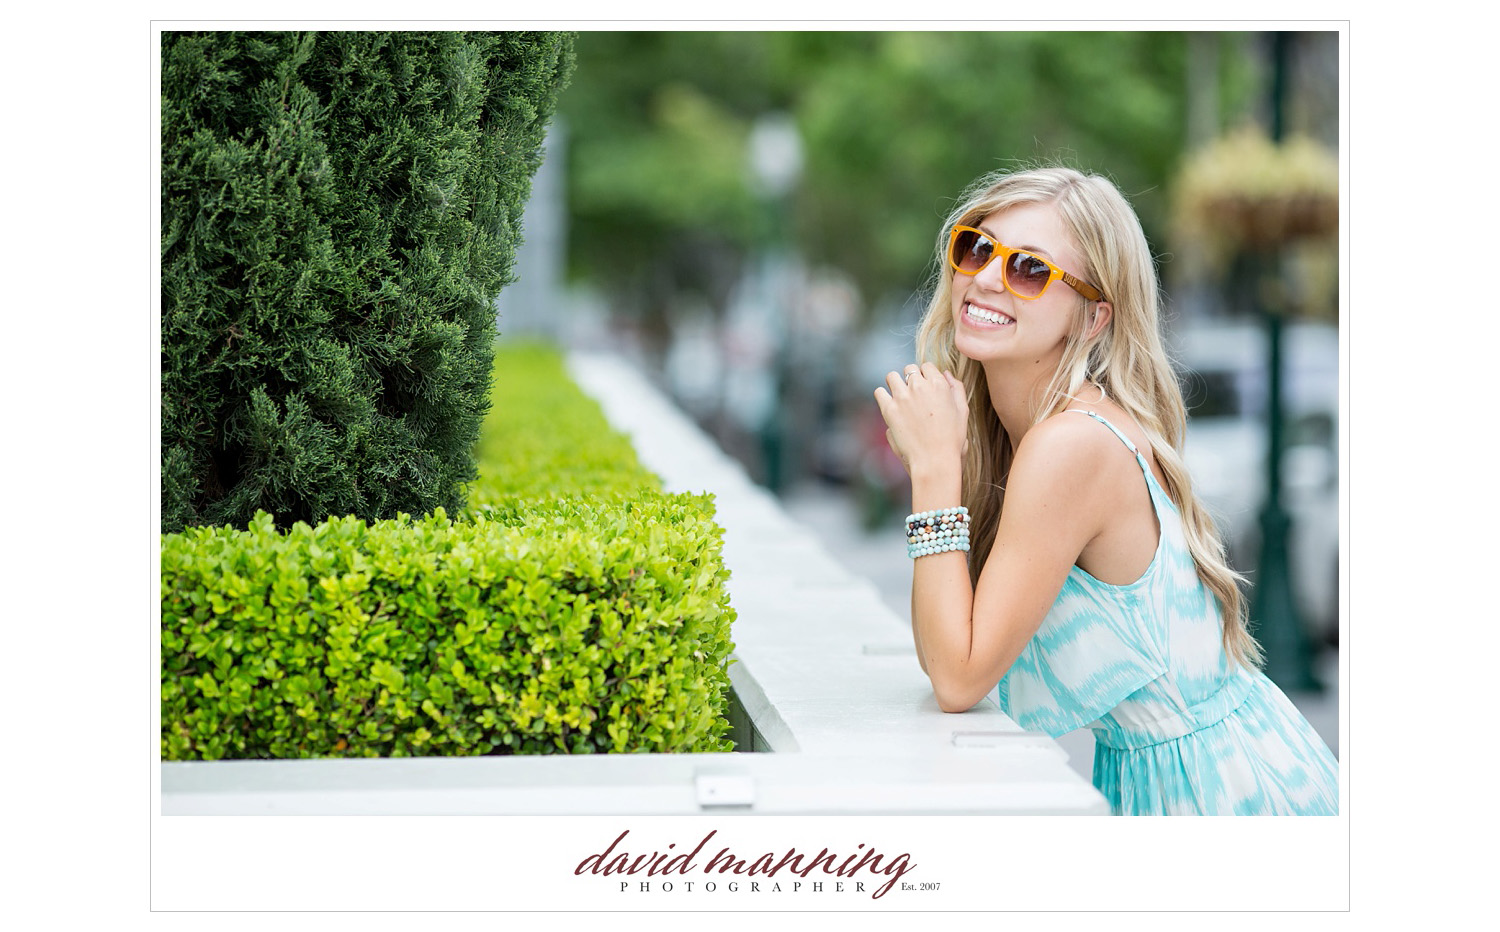 SOLO-Eyewear--Commercial-Editorial-Photos-David-Manning-Photographers-0010.jpg